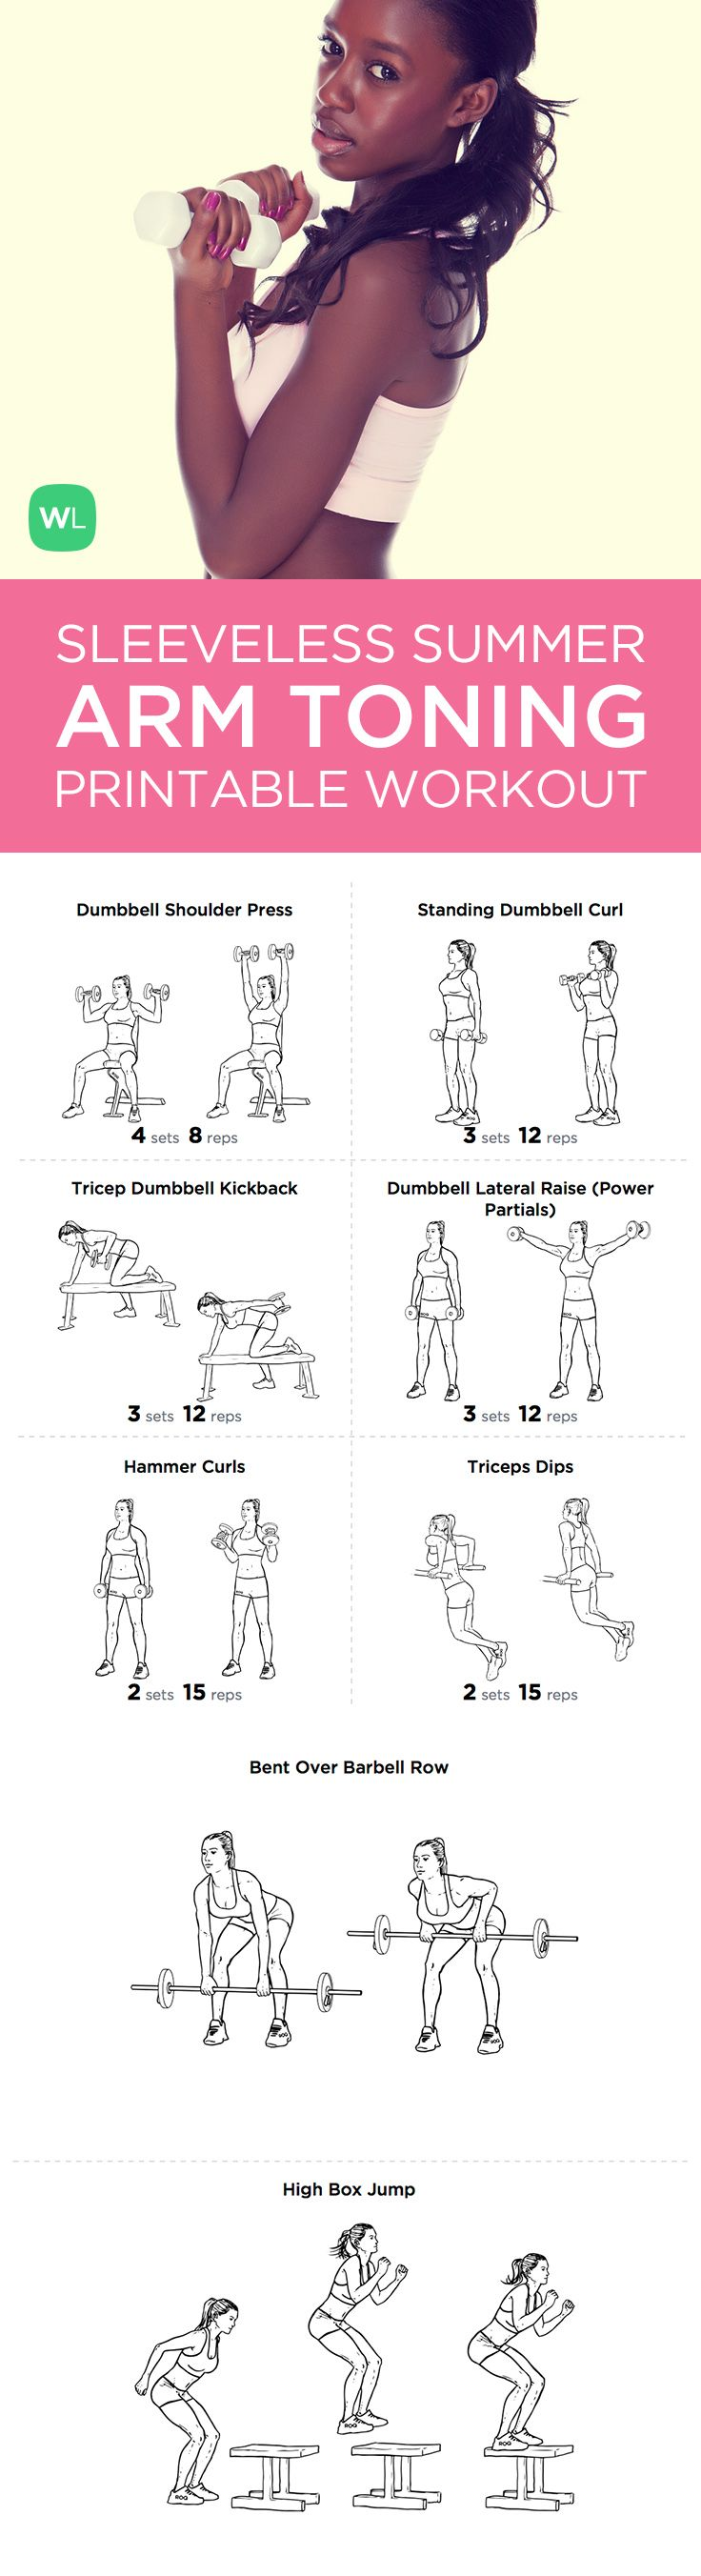 graphic regarding Printable Arm Workouts titled 15-second Summer season Sleeveless Fingers Toning printable exercise routine